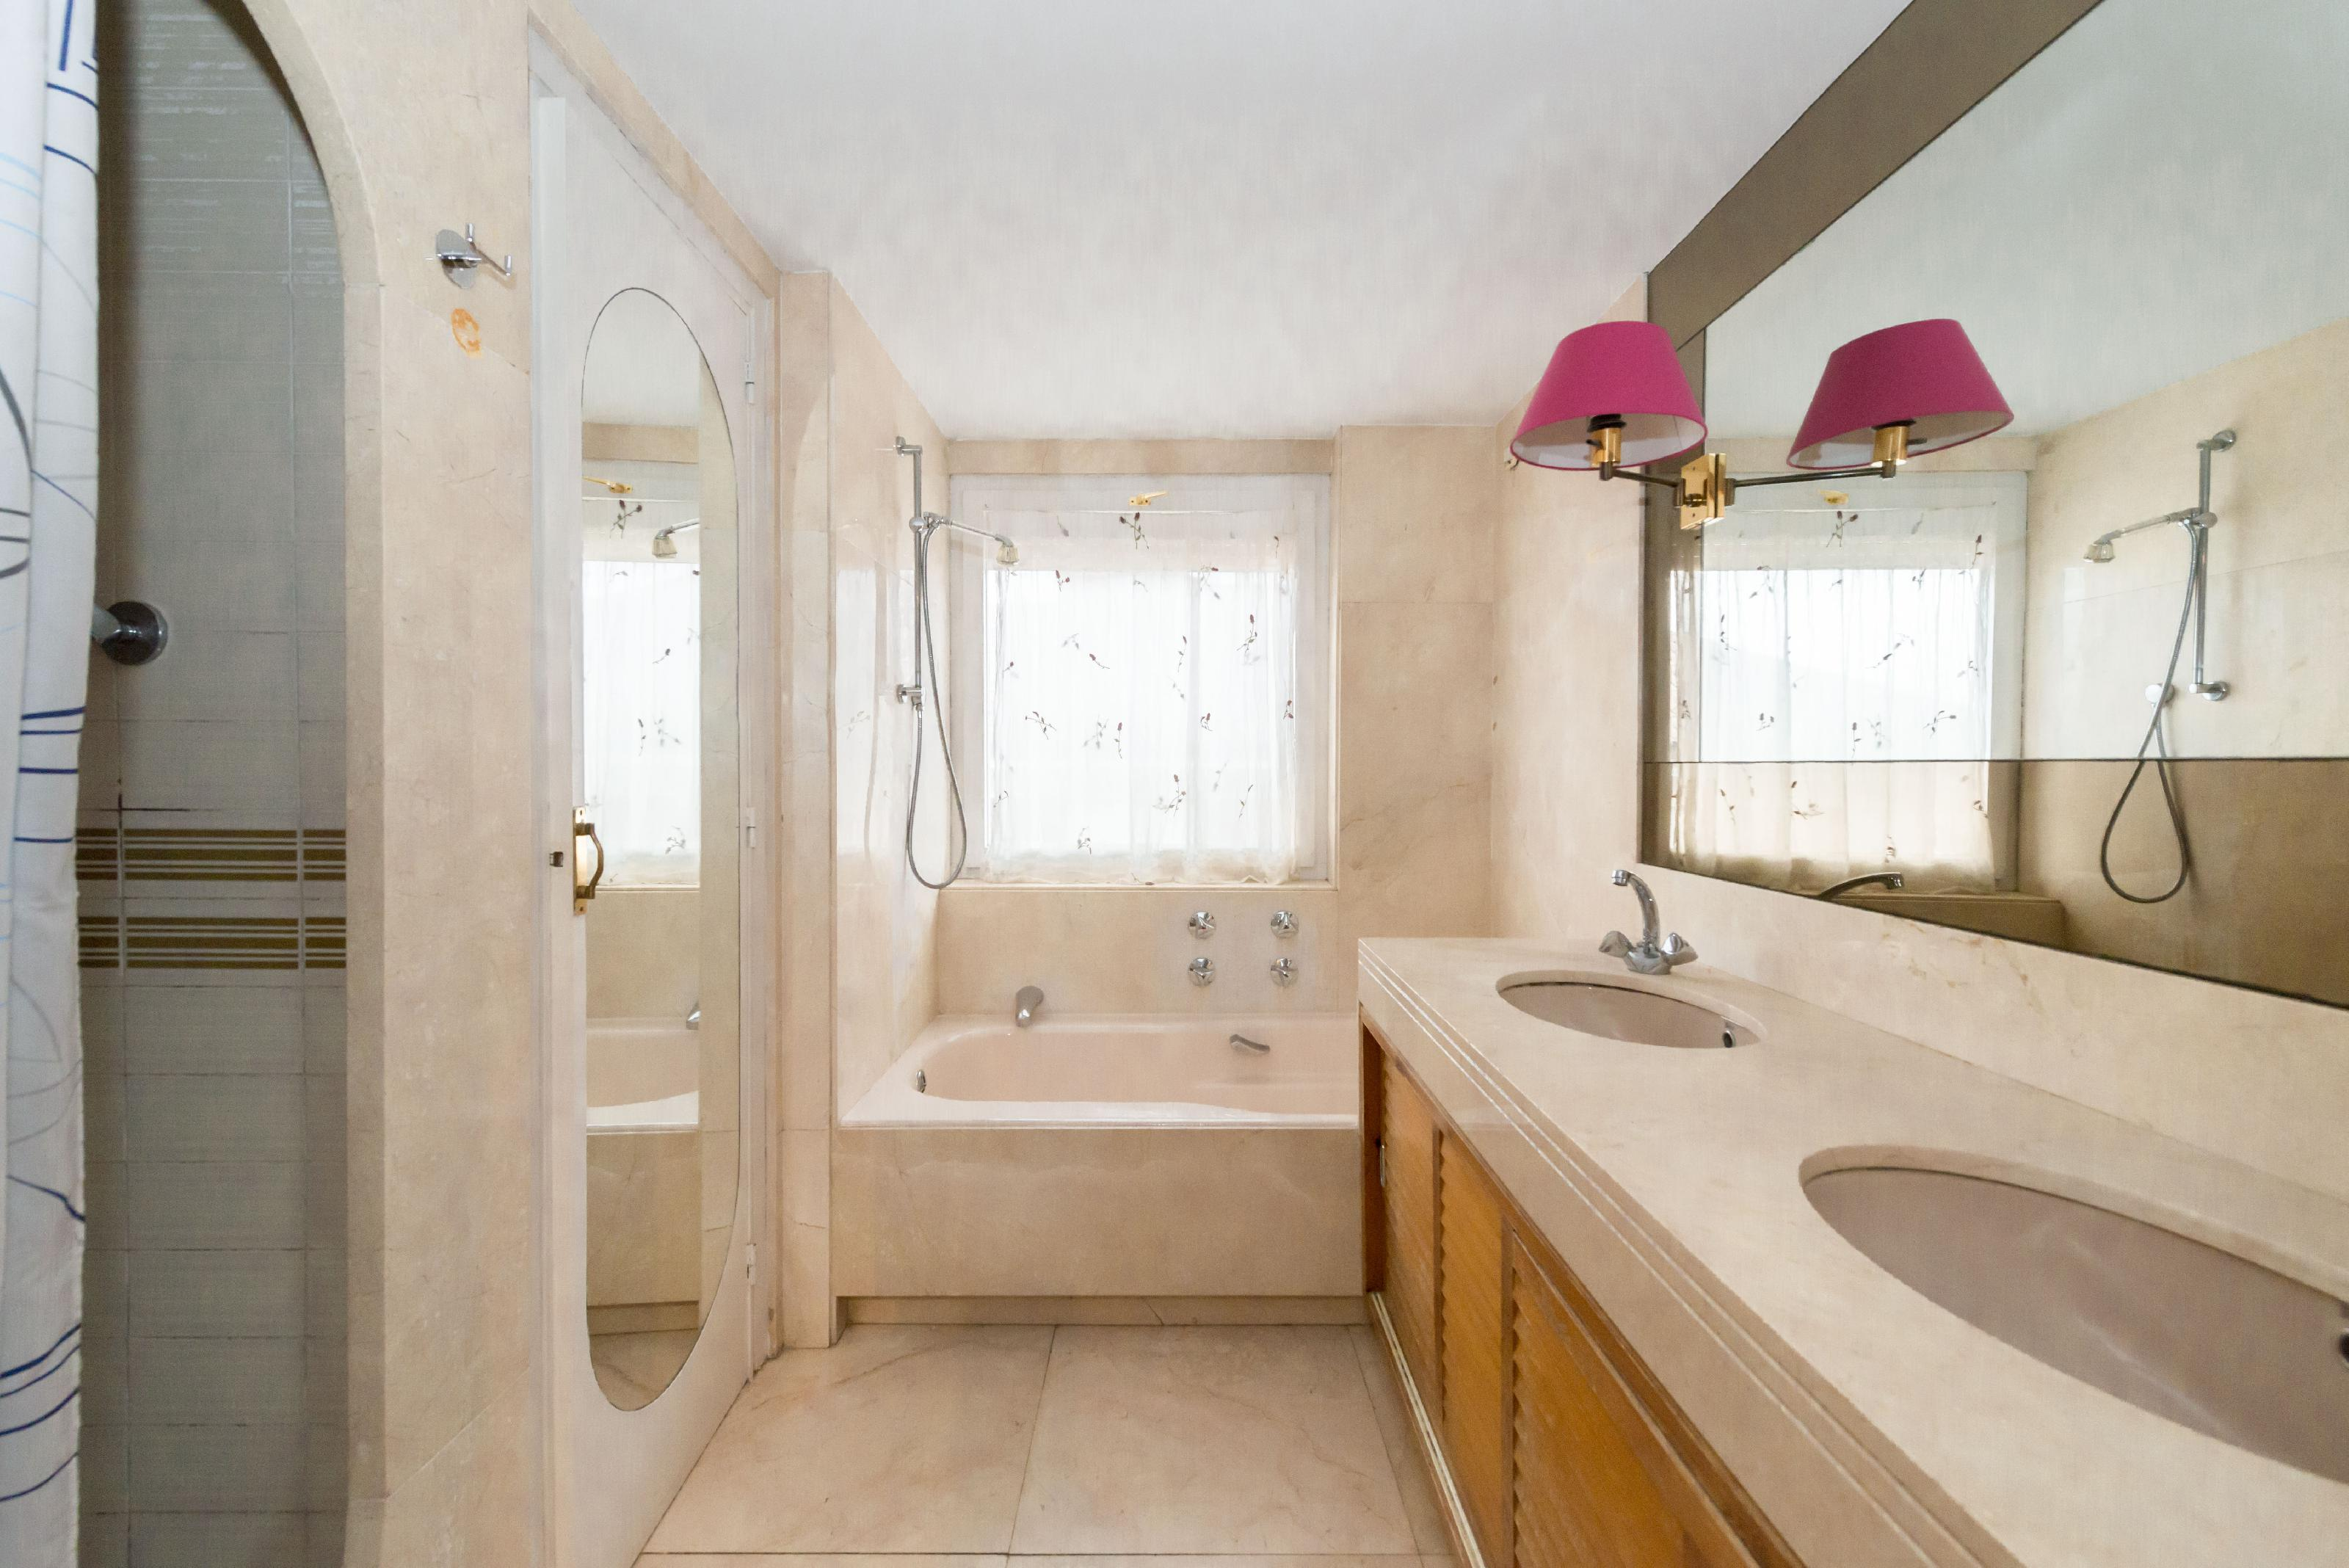 245495 Penthouse for sale in Les Corts, Pedralbes 19